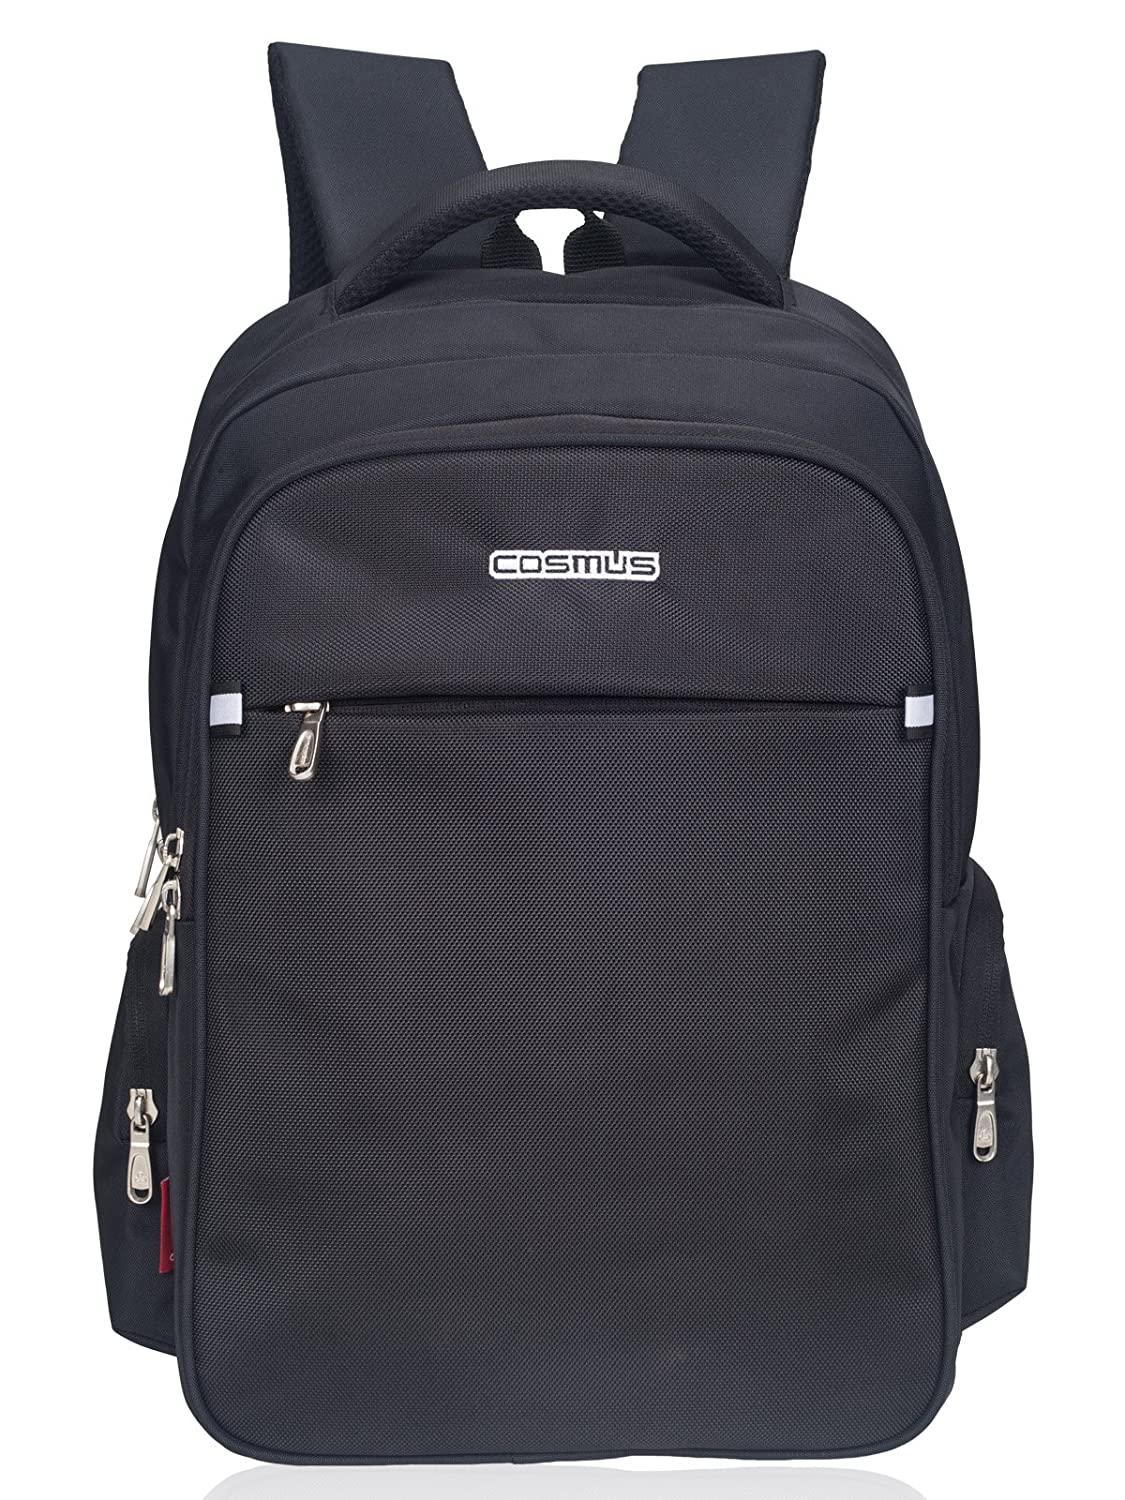 Cosmus Atomic 30 Litre Black Laptop Backpack